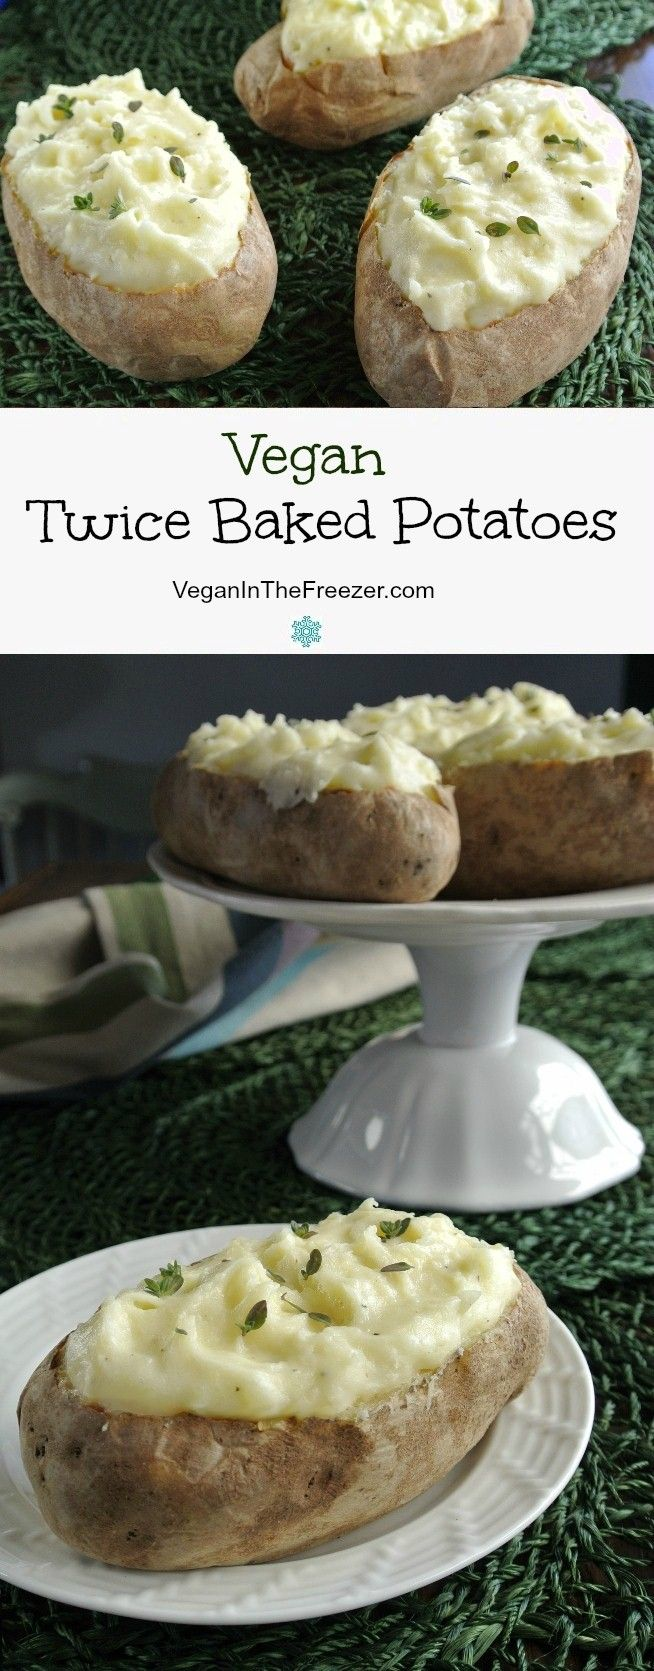 Twice Baked Potatoes are a great standby for company. Easy to pre-prepare and they are a special treat for your family too. Just slide them in the oven and relax.